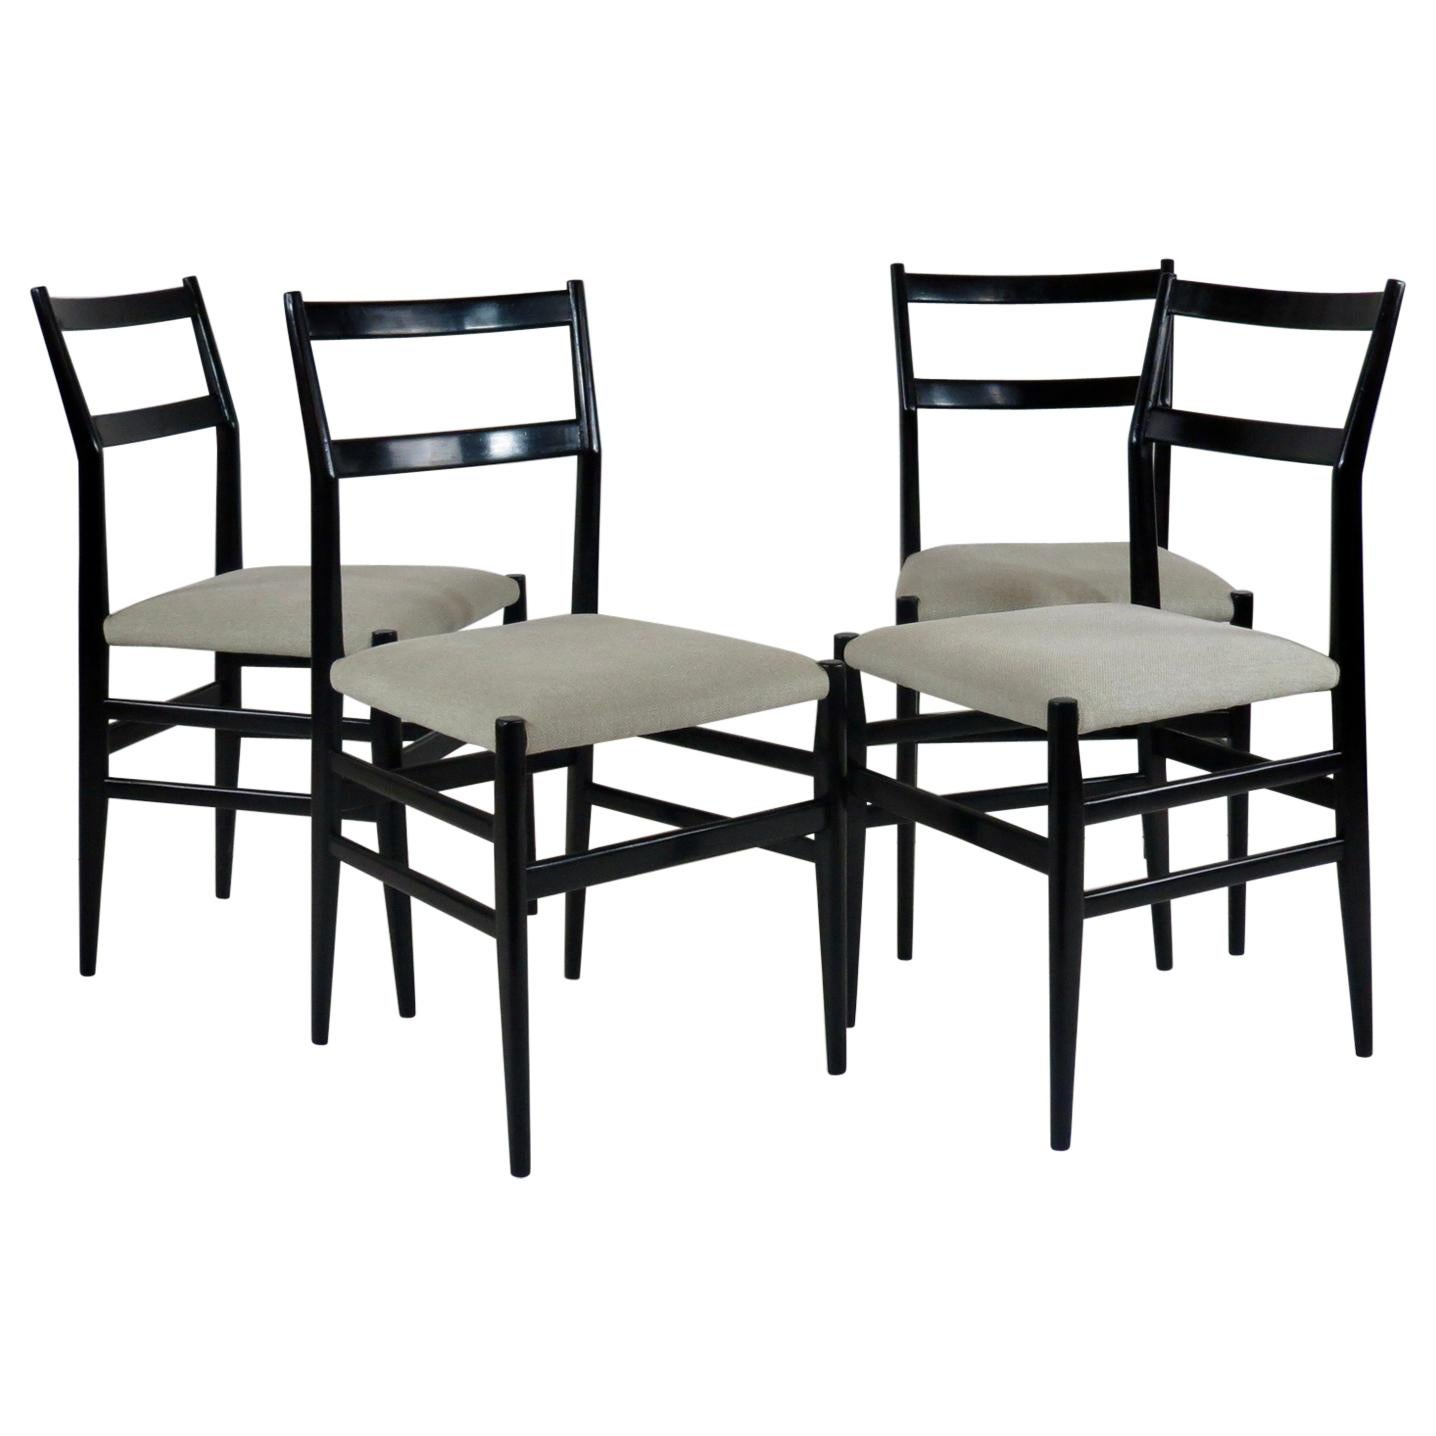 """Set of Four Gio Ponti Black Laquered """"Leggere"""" Chairs 646 by Cassina, 1952"""